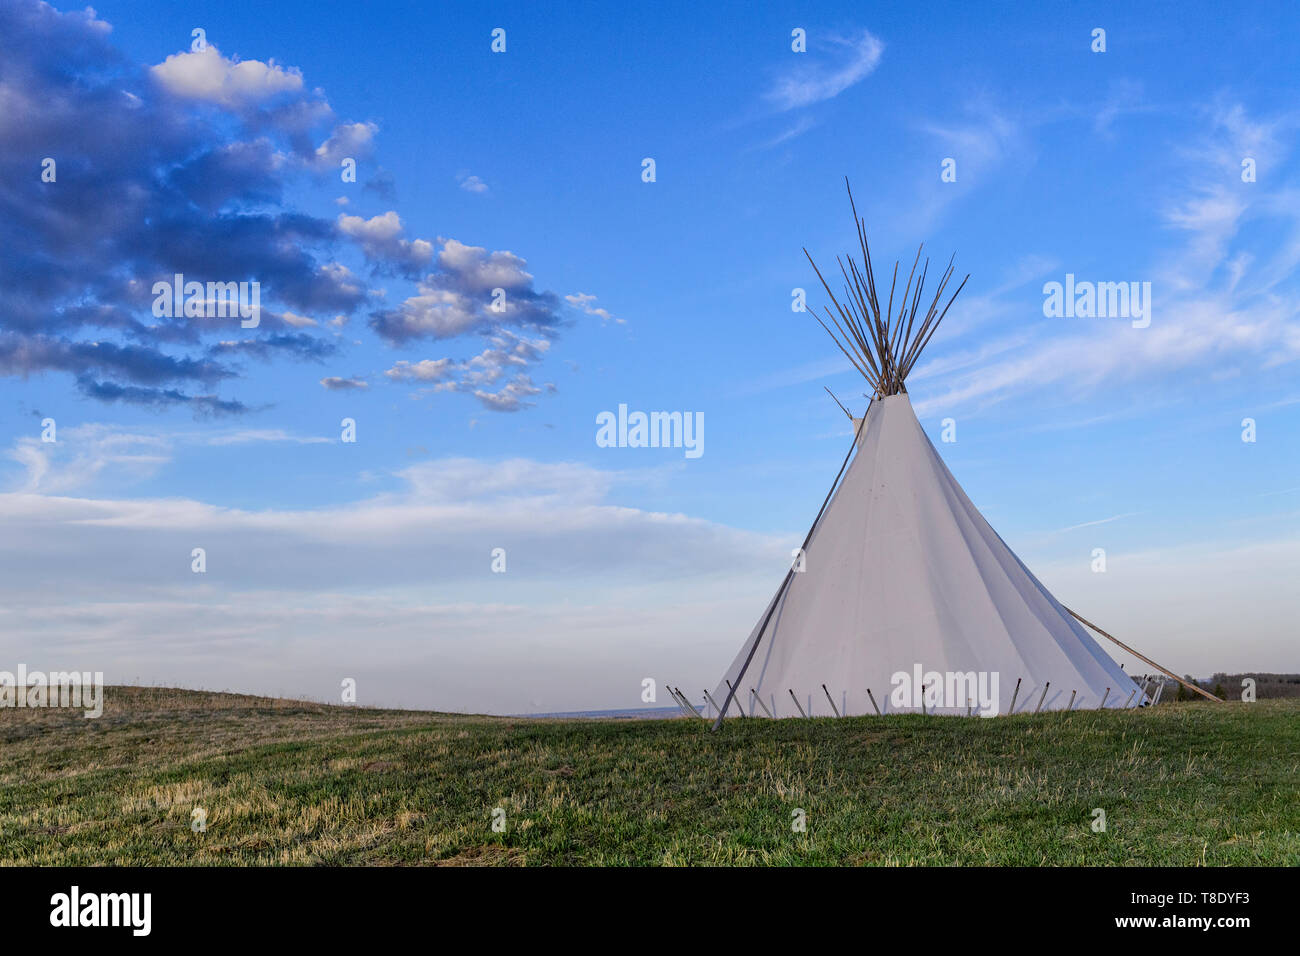 First Nations teepee or tipi - Stock Image